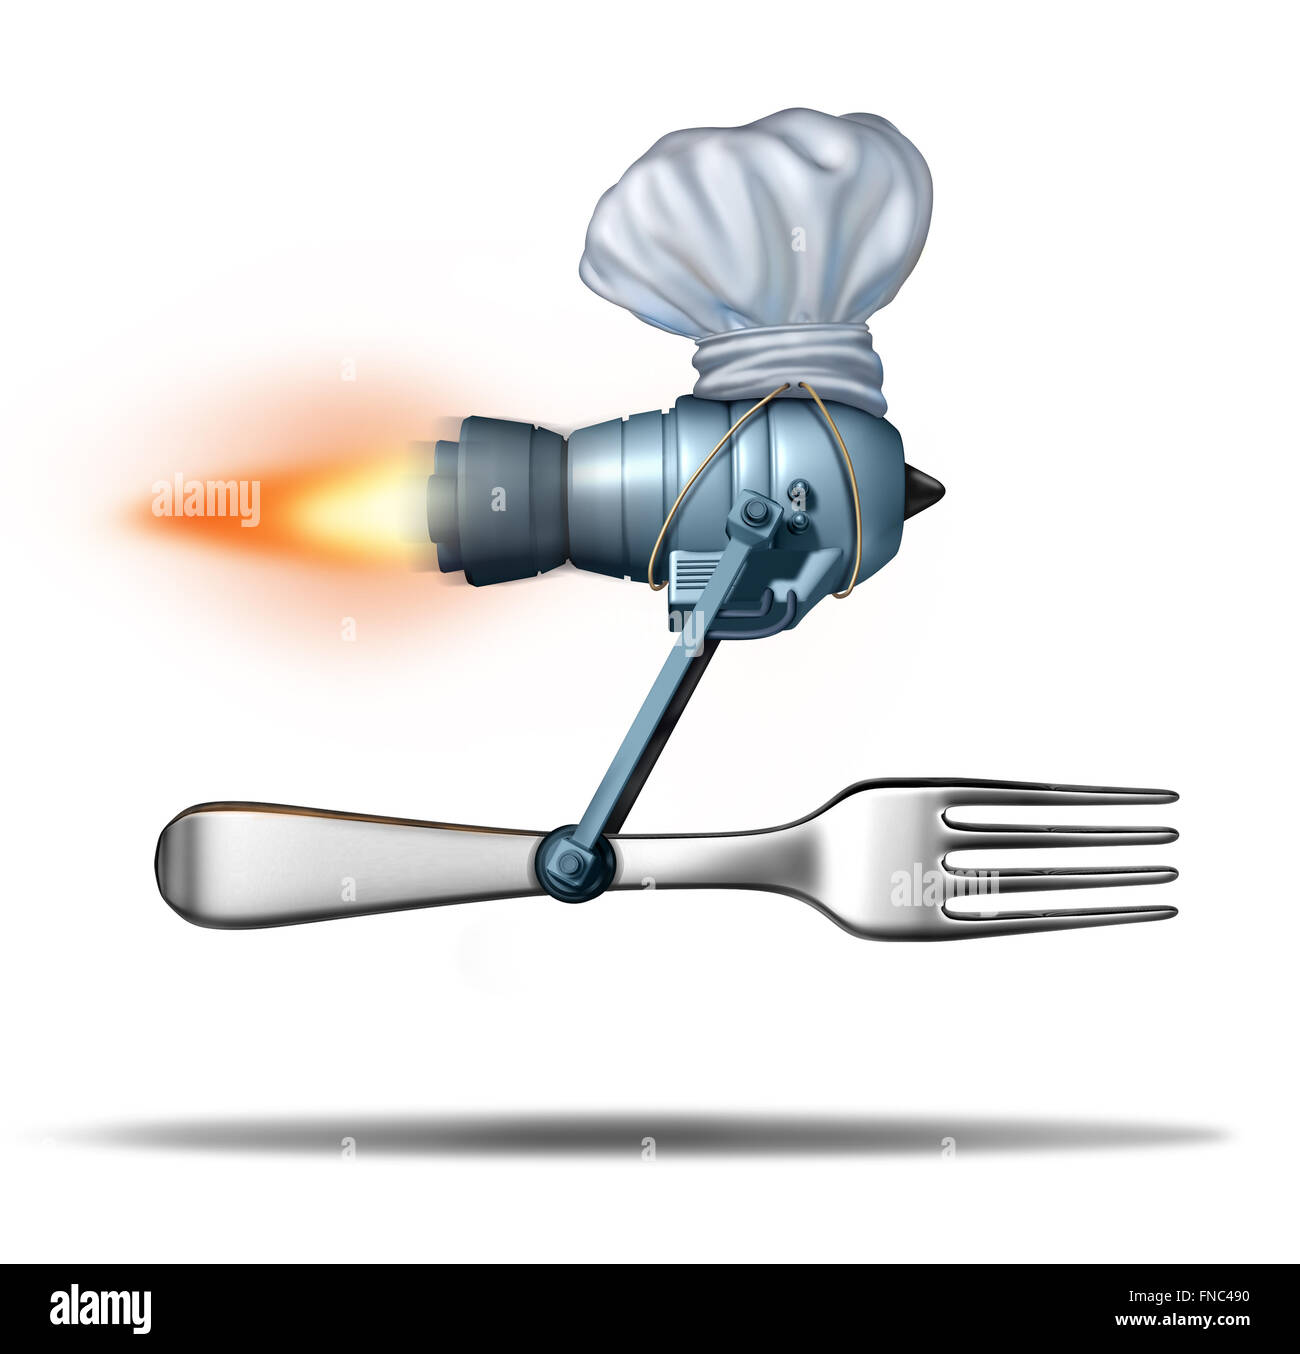 Fast food delivery and quick catering service concept as a jet engine with a fork wearing a chef hat as a meal delivering - Stock Image